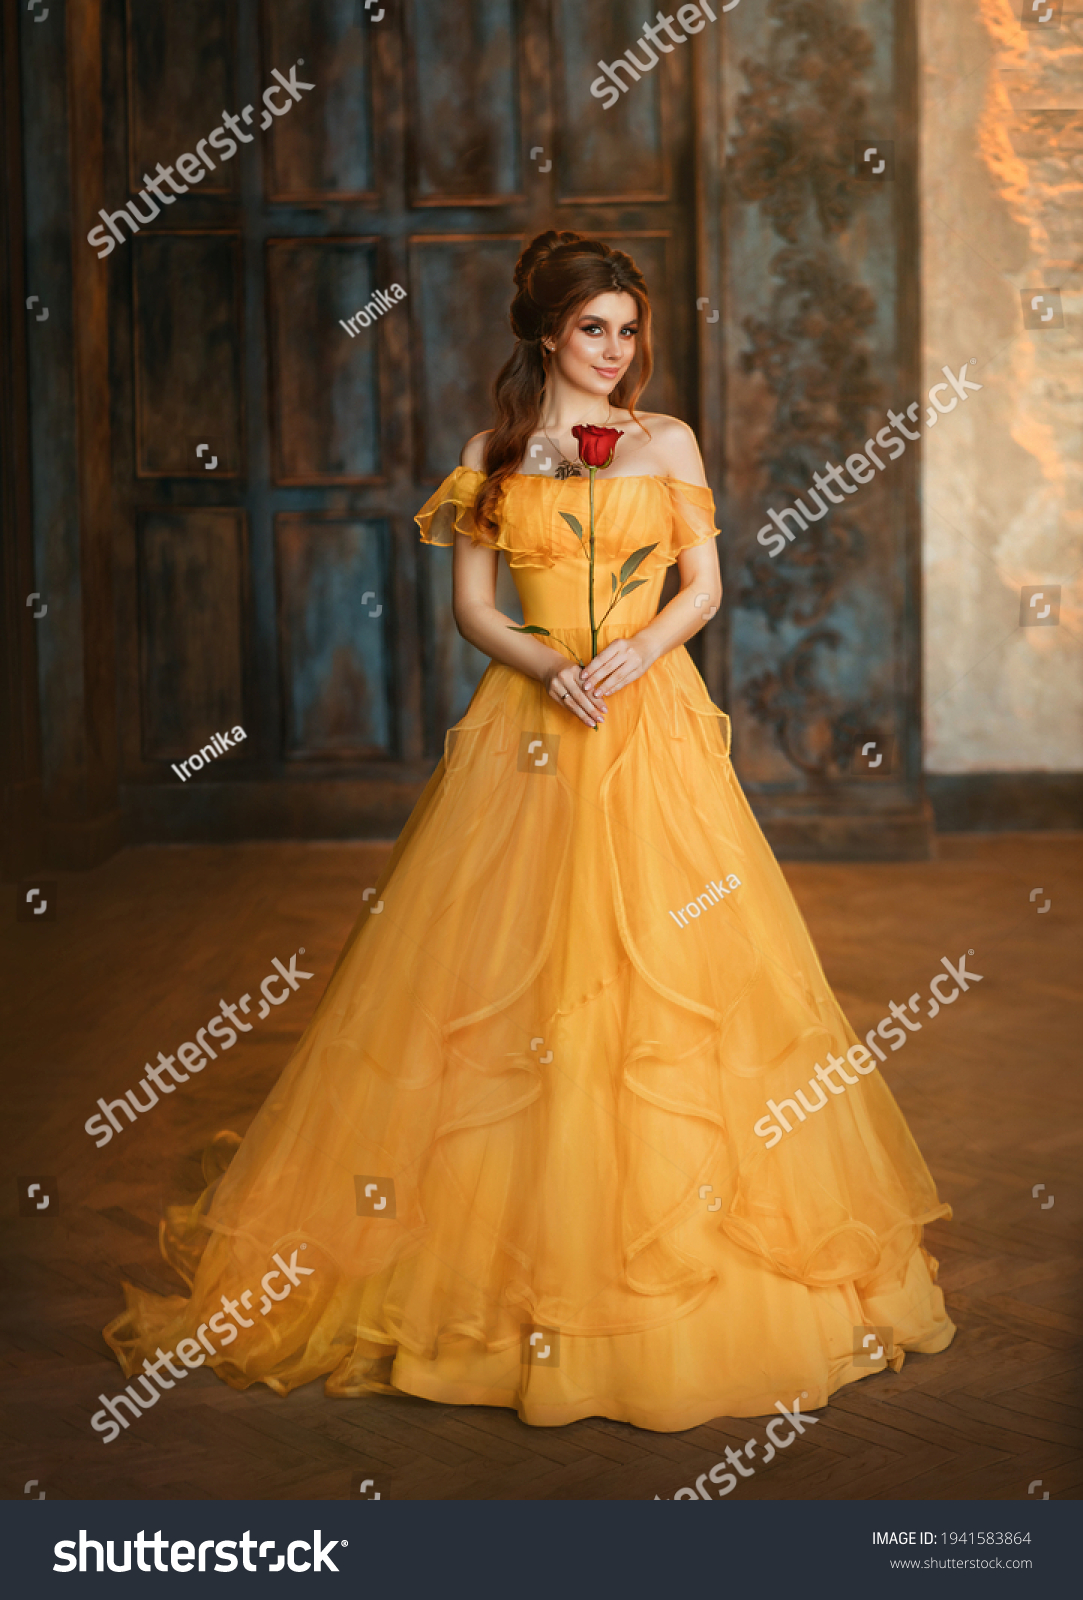 Girl beauty fantasy princess in yellow long historical, medieval silk dress holding flower red rose in her hands. Background of old gothic castle room. Fairy tale bewitched queen. Happy woman smiles. #1941583864